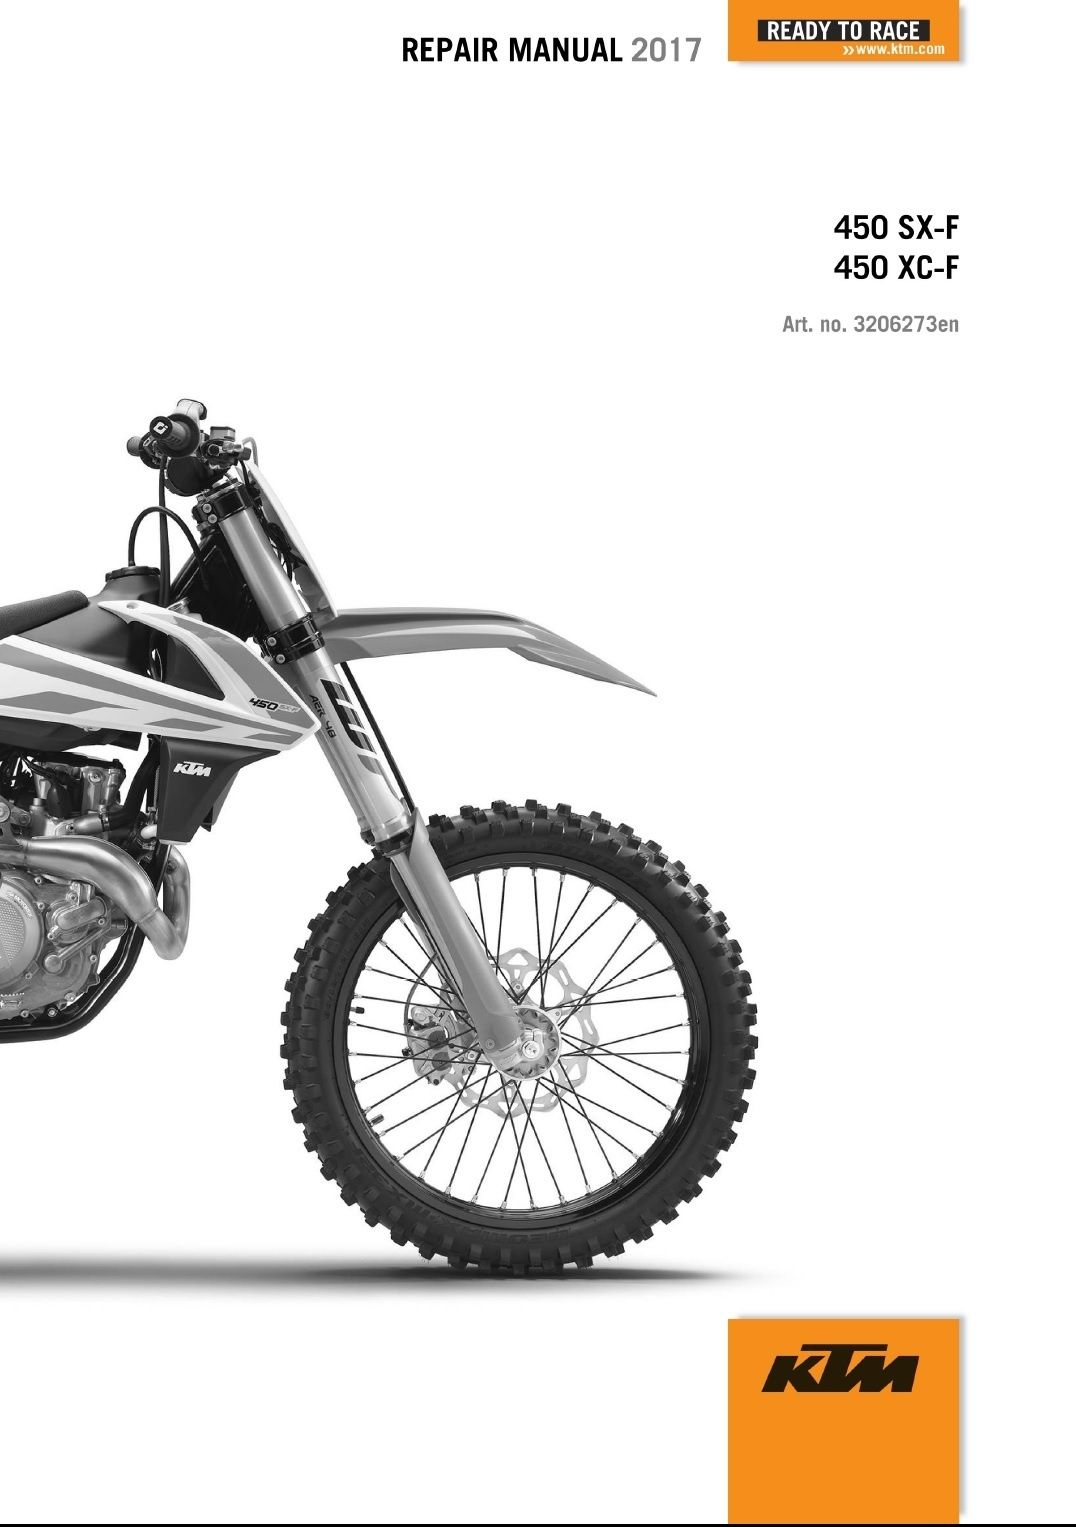 COVERS ALL MODELS LISTED ABOVE & ALL REPAIRS A-Z This is a GENUINE KTM  COMPLETE SERVICE REPIAR MANUAL for 2017 KTM 450 SX-F ...